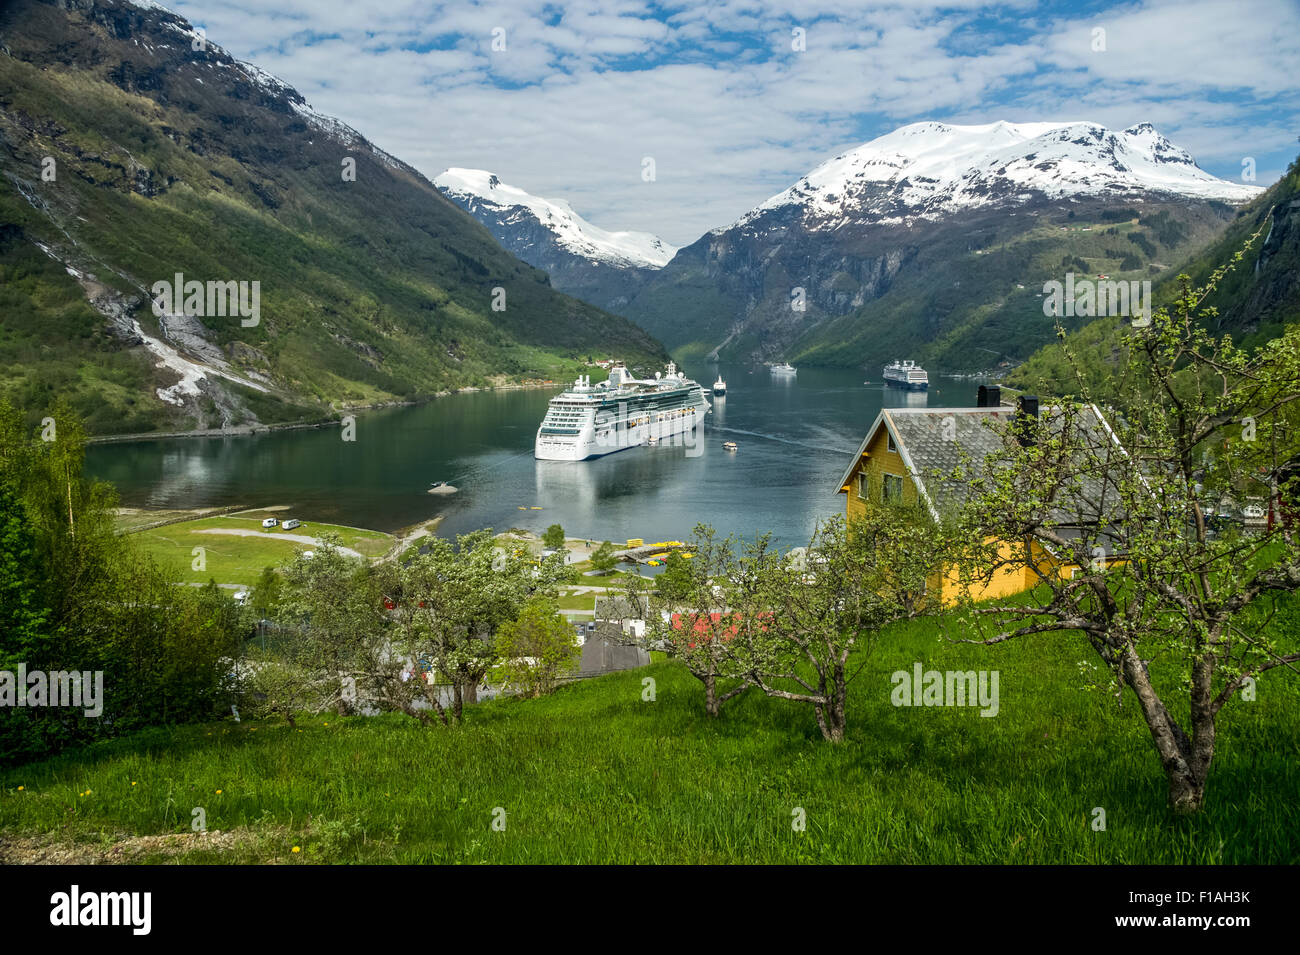 Geiranger town and fjord. Cruise ship at anchor - Stock Image